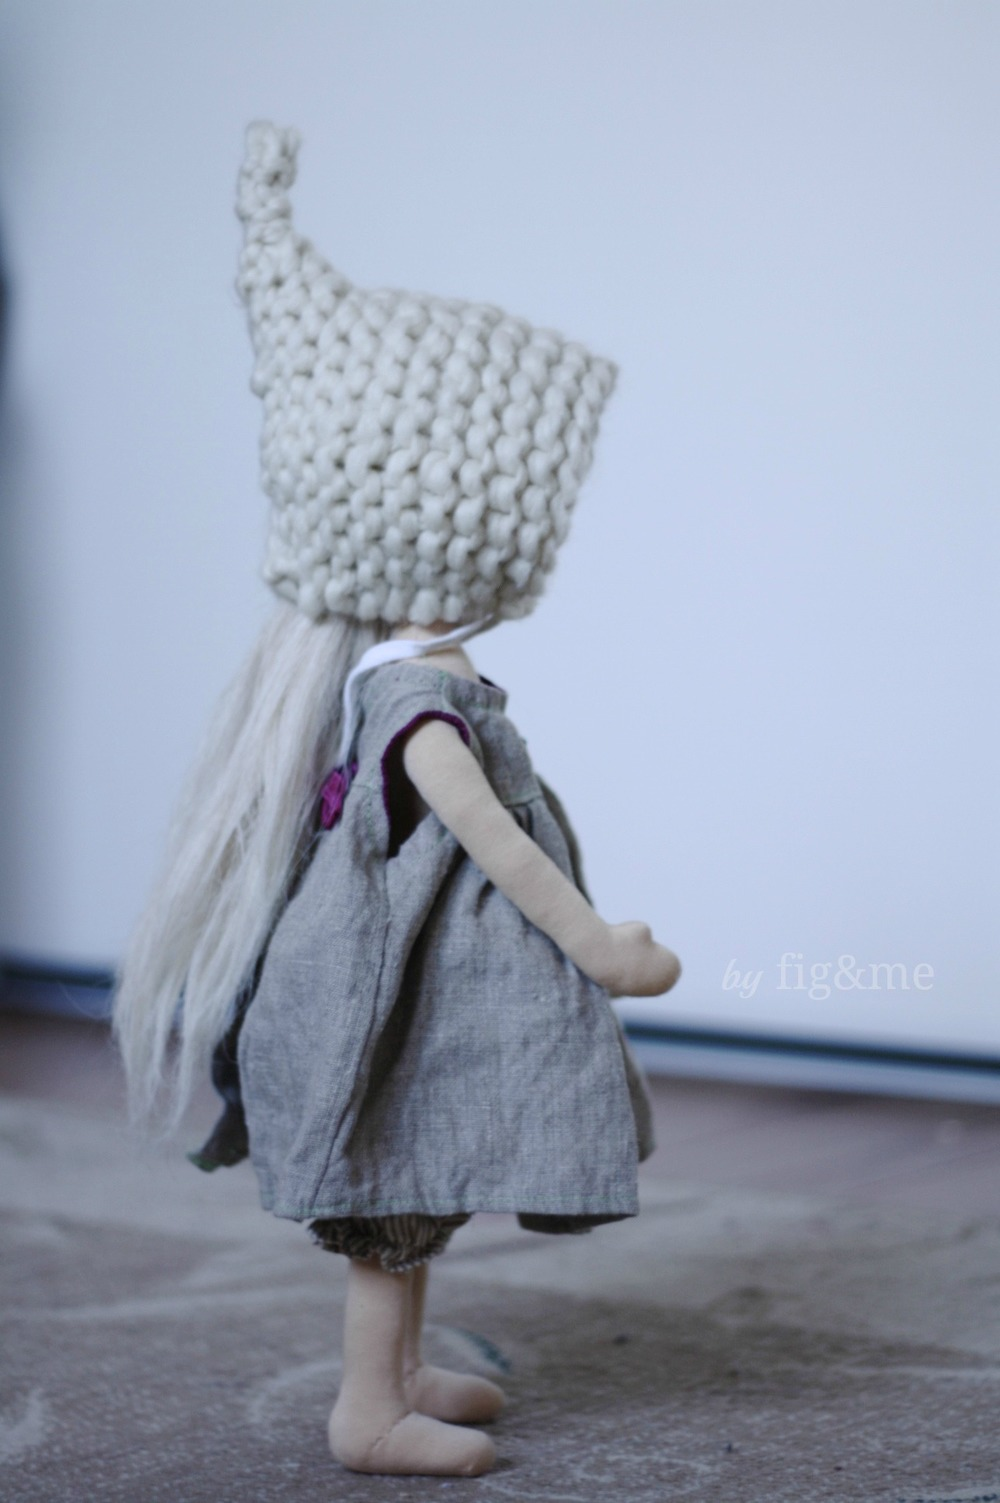 Cygnet, a handmade natural doll. By Fig and me.